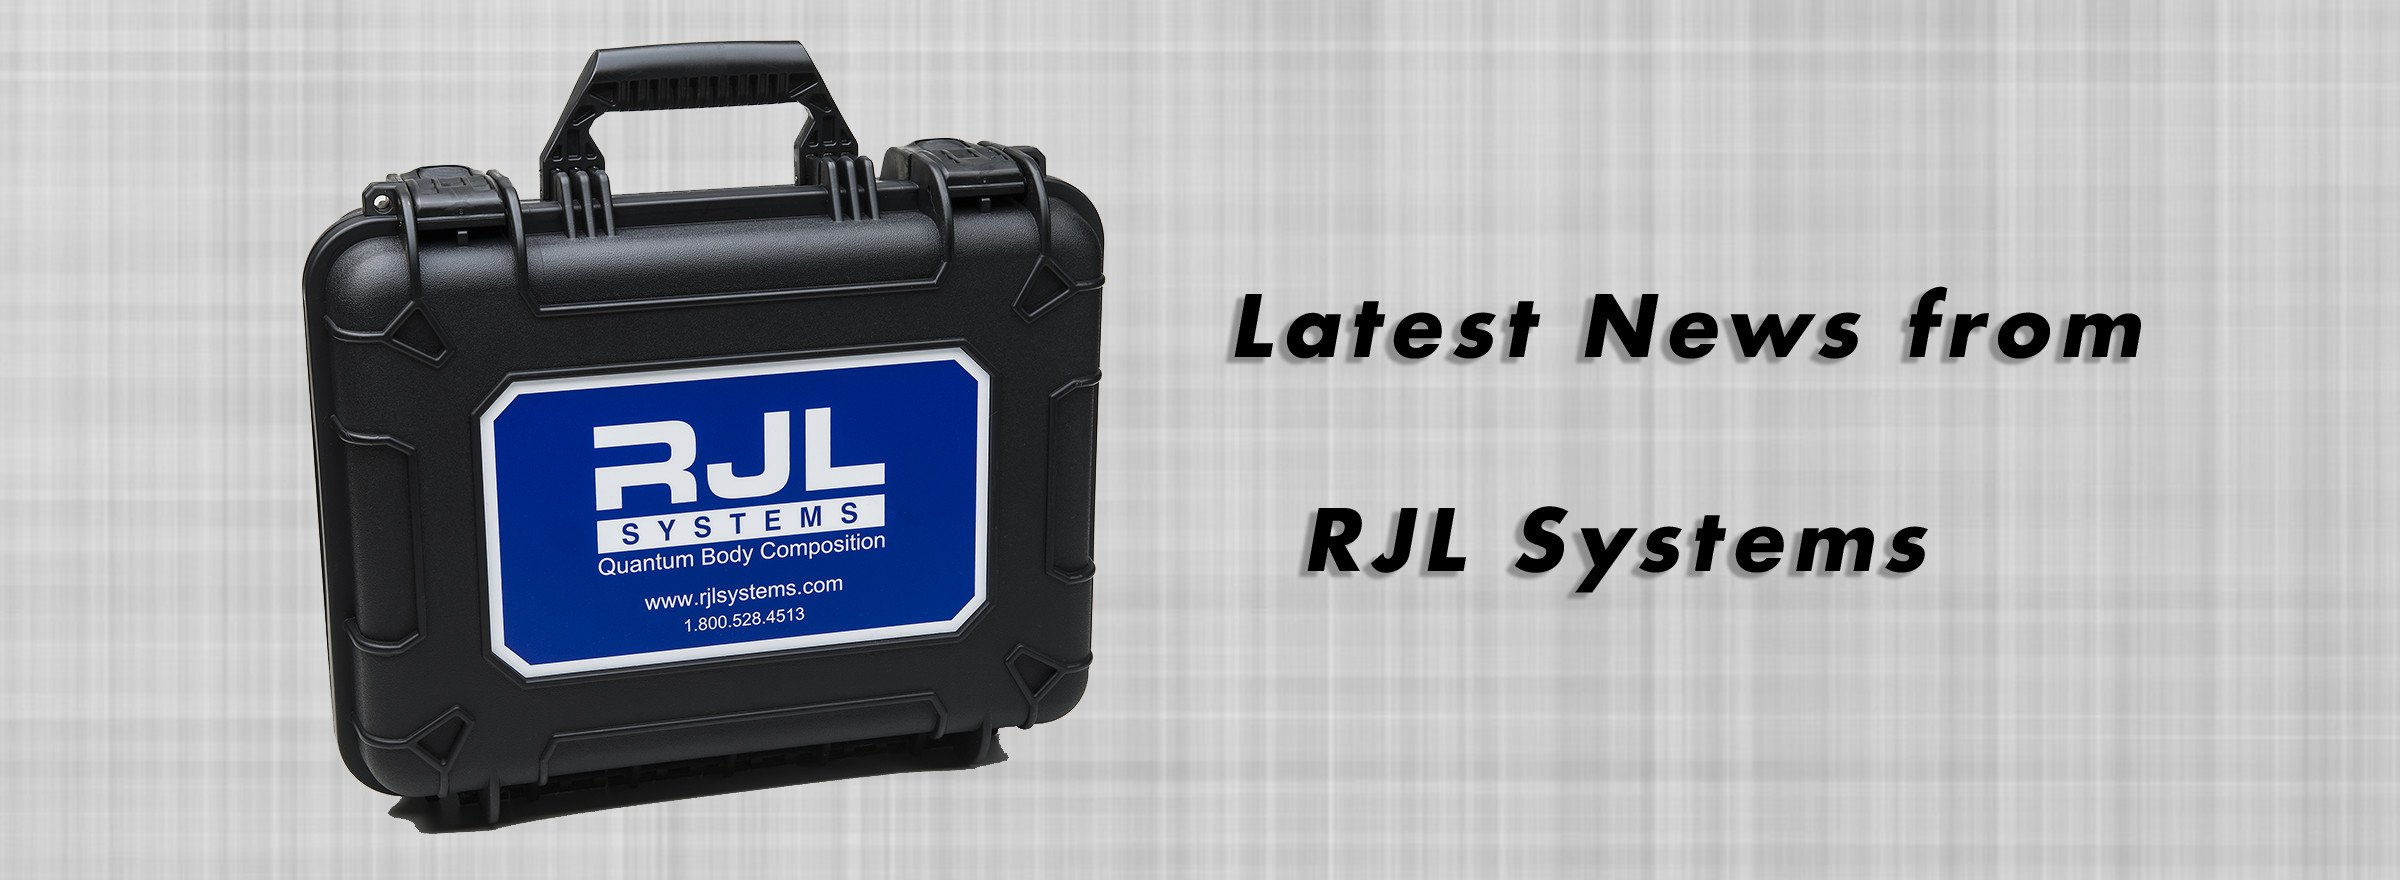 Latest News from RJL Systems